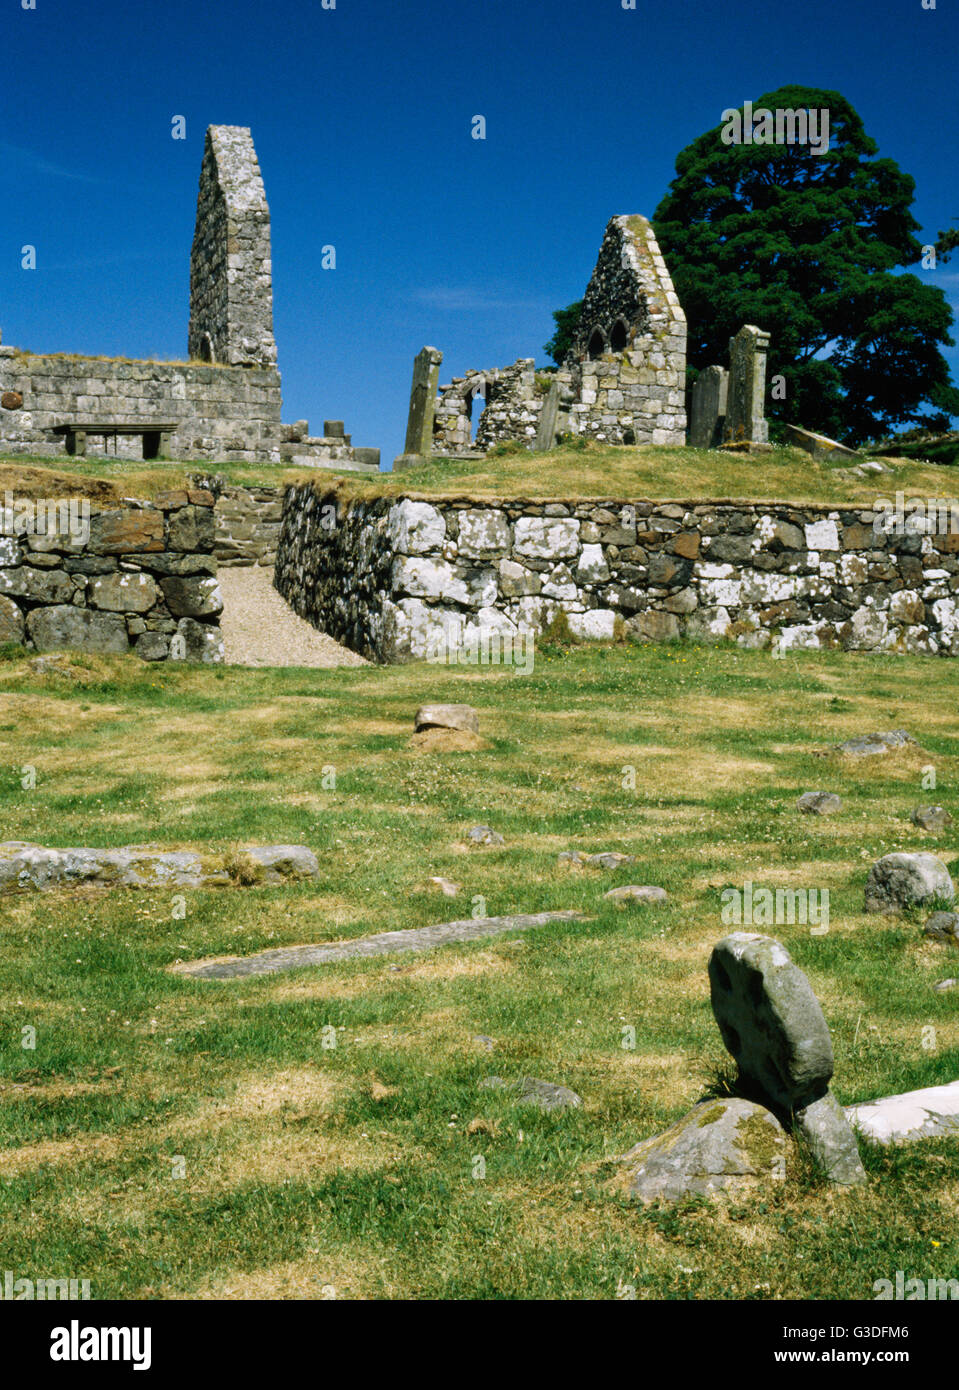 The ruins of St Blane's Church, Isle of Bute, Scotland, UK. C12th Romanesque church dedicated to the C6th saint - Stock Image